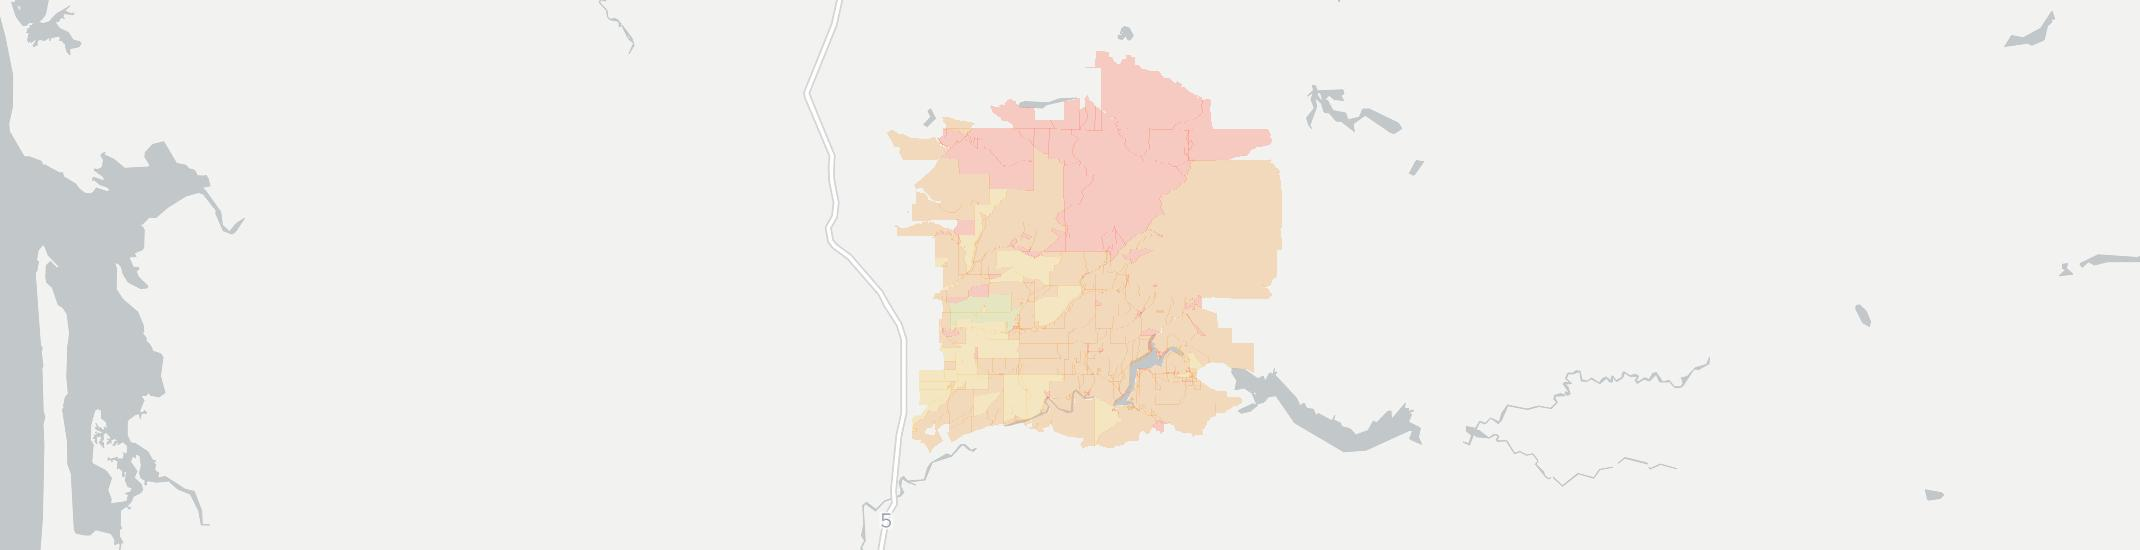 Onalaska Internet Competition Map. Click for interactive map.